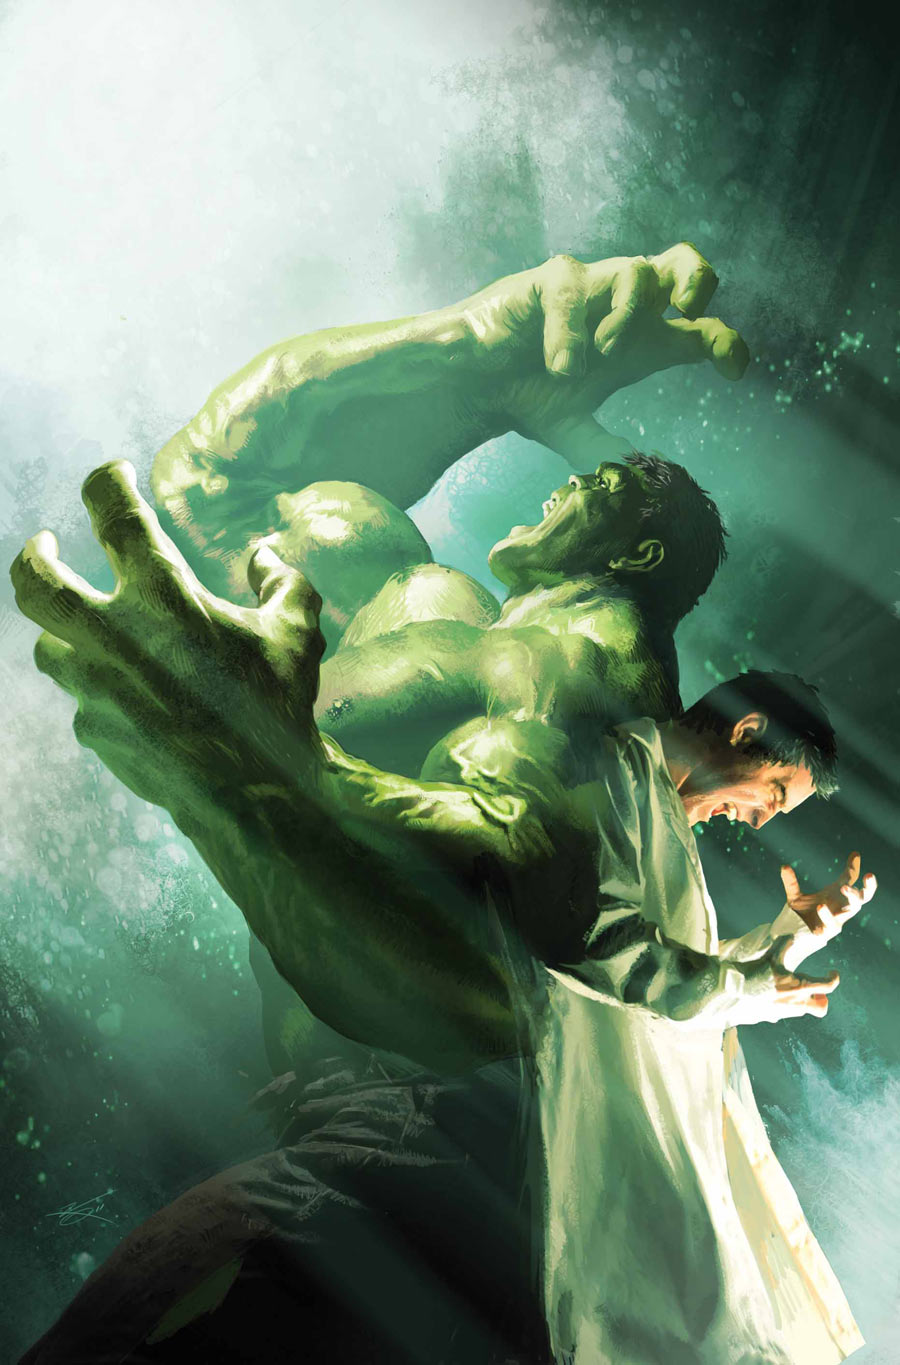 Comic Covers in The Incredible Hulk Incredible Hulk 7.1 Cover by